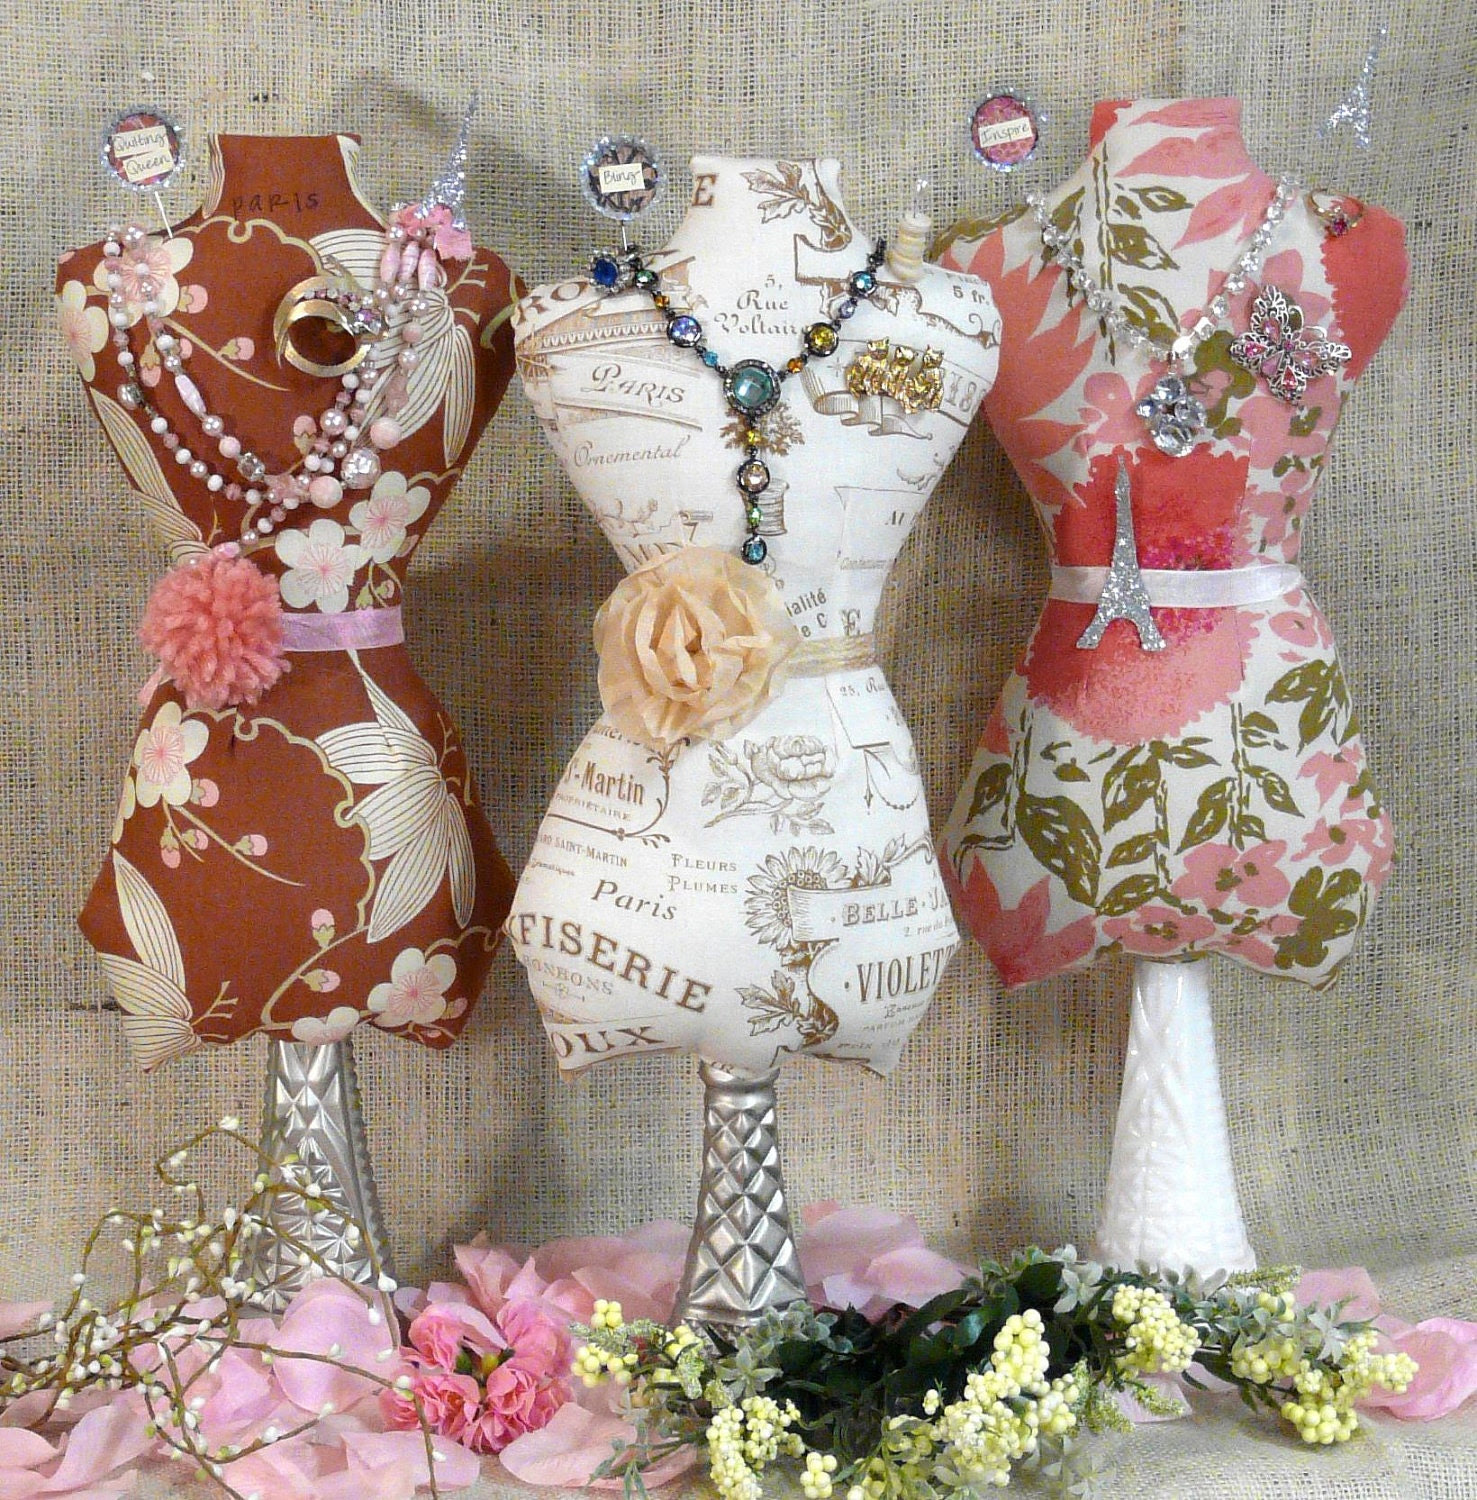 New 2011 Large Mannequin Dress Form E Pattern - jewelry holder Pincushion Pin Keep email primitive pdf pinkeep cushion